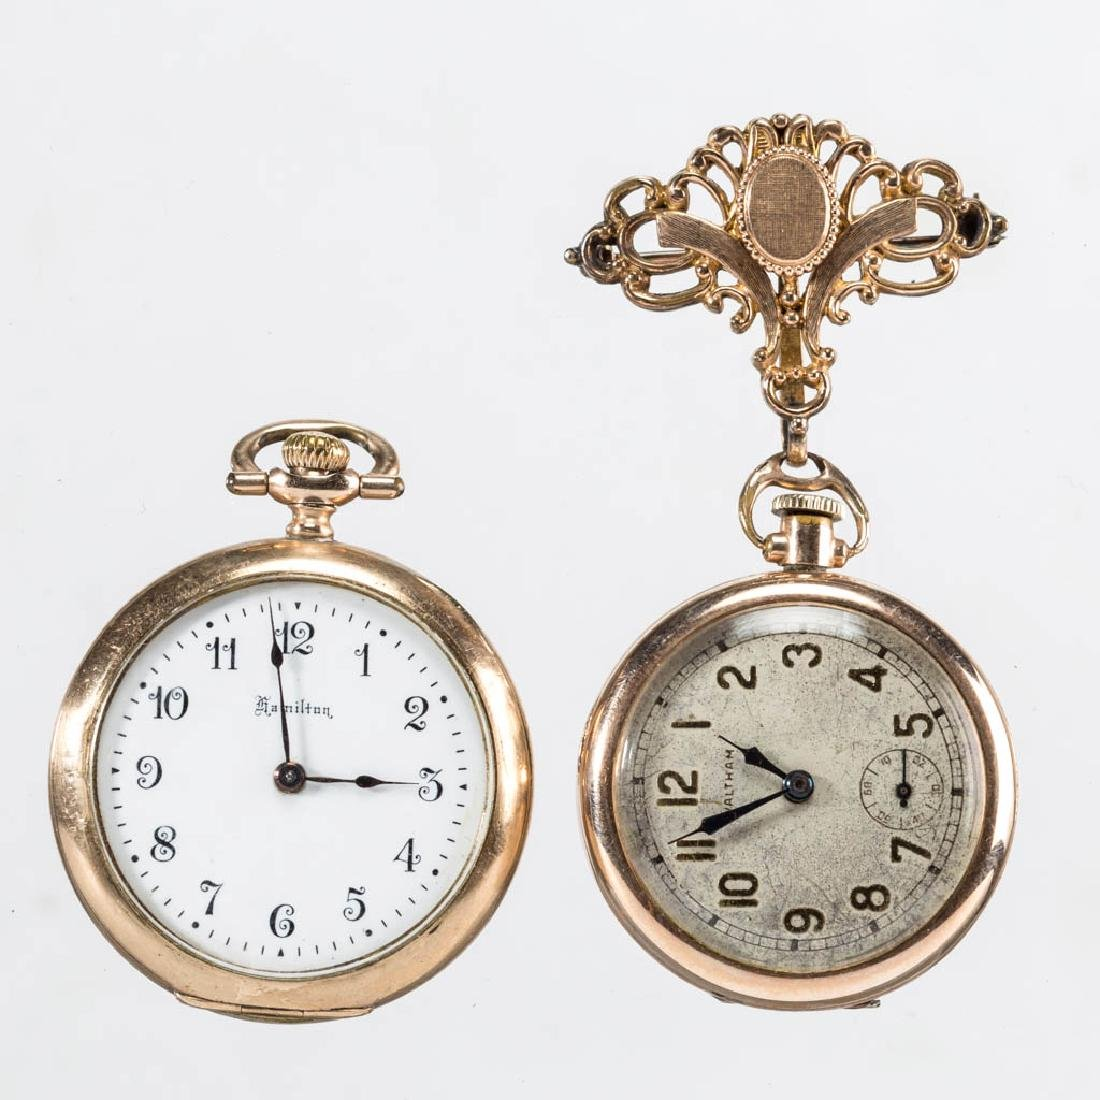 WALTHAM 21-JEWEL LADY'S POCKET WATCH